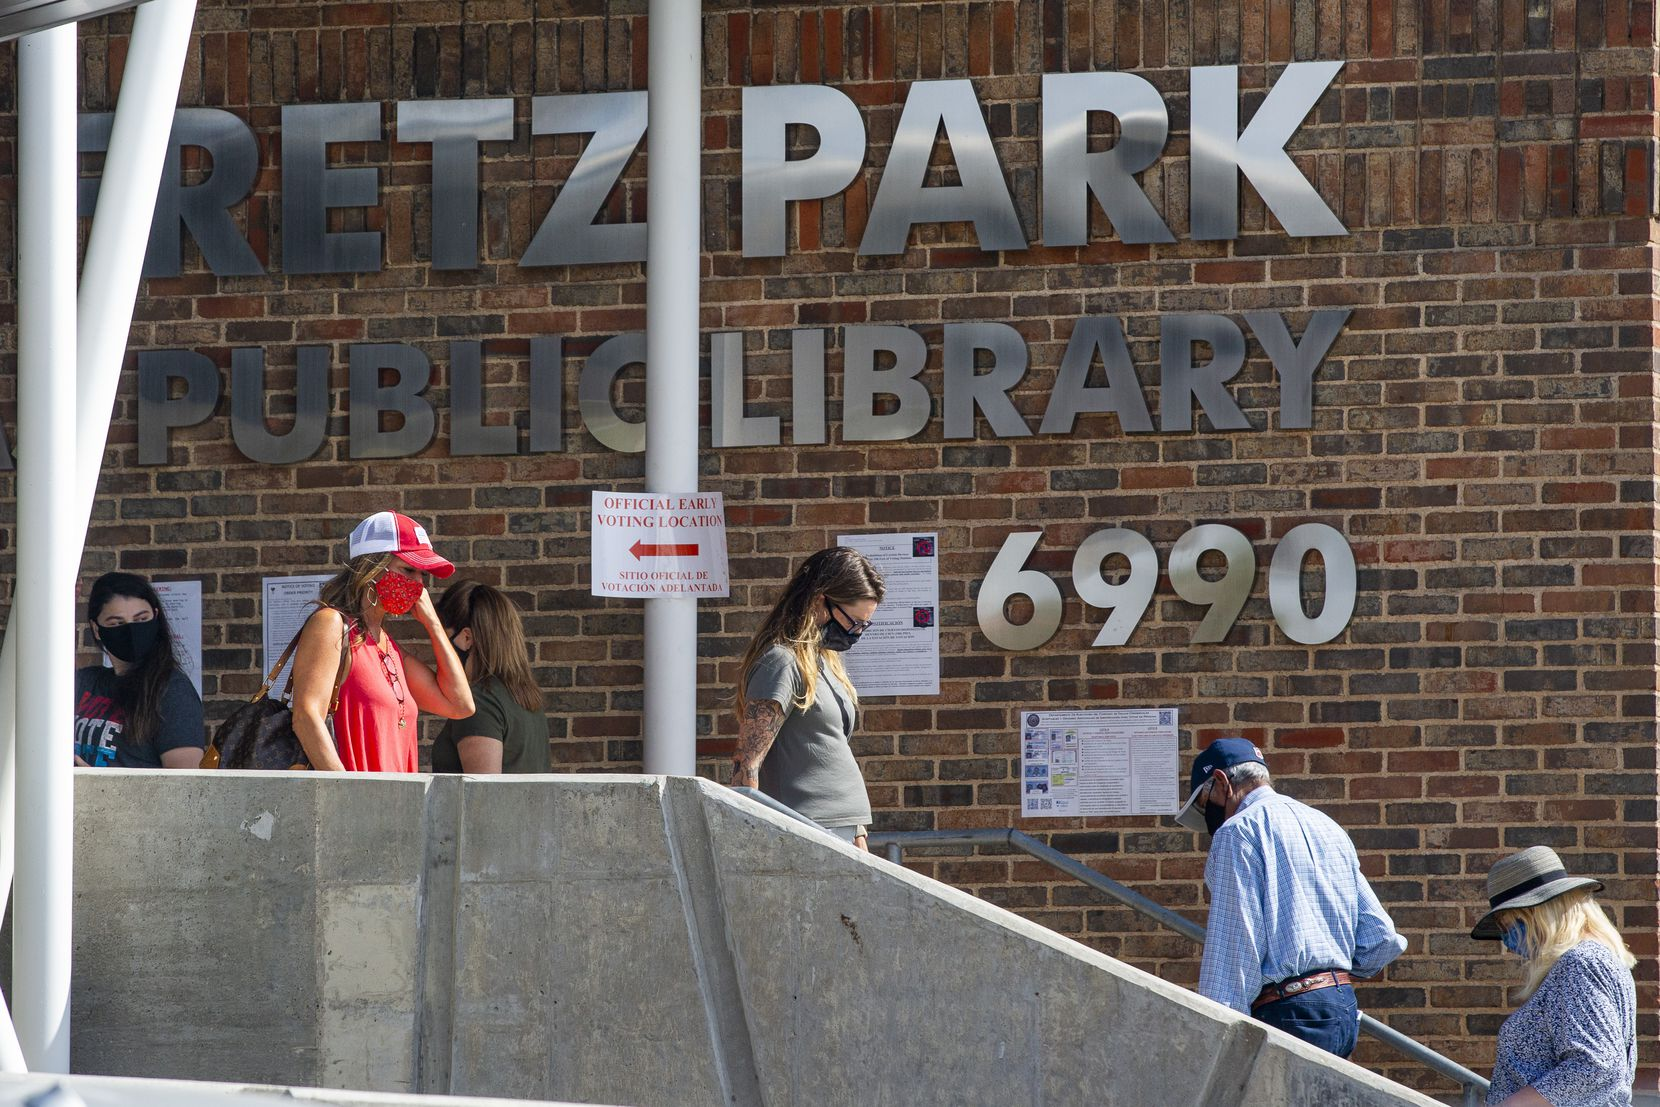 Voters line up to cast their ballot during the early voting period for the general U.S. election at Fretz Park Public Library in Dallas on Tuesday, Oct. 20, 2020. (Lynda M. González/The Dallas Morning News)